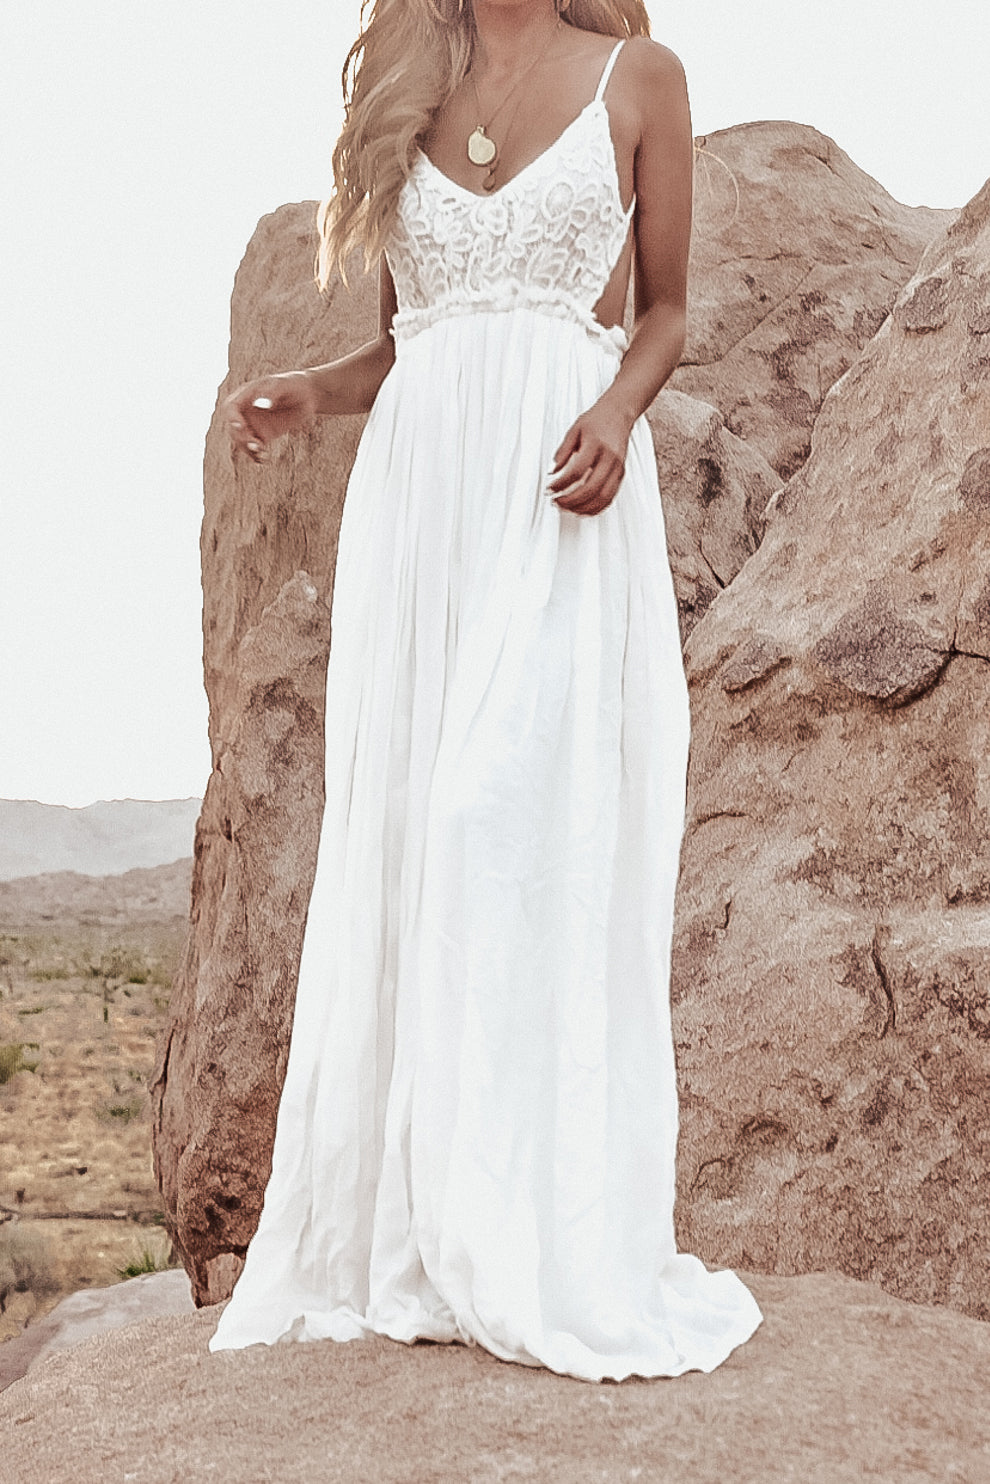 Camilla Open Back Crochet Maxi Dress - Back in Stock!